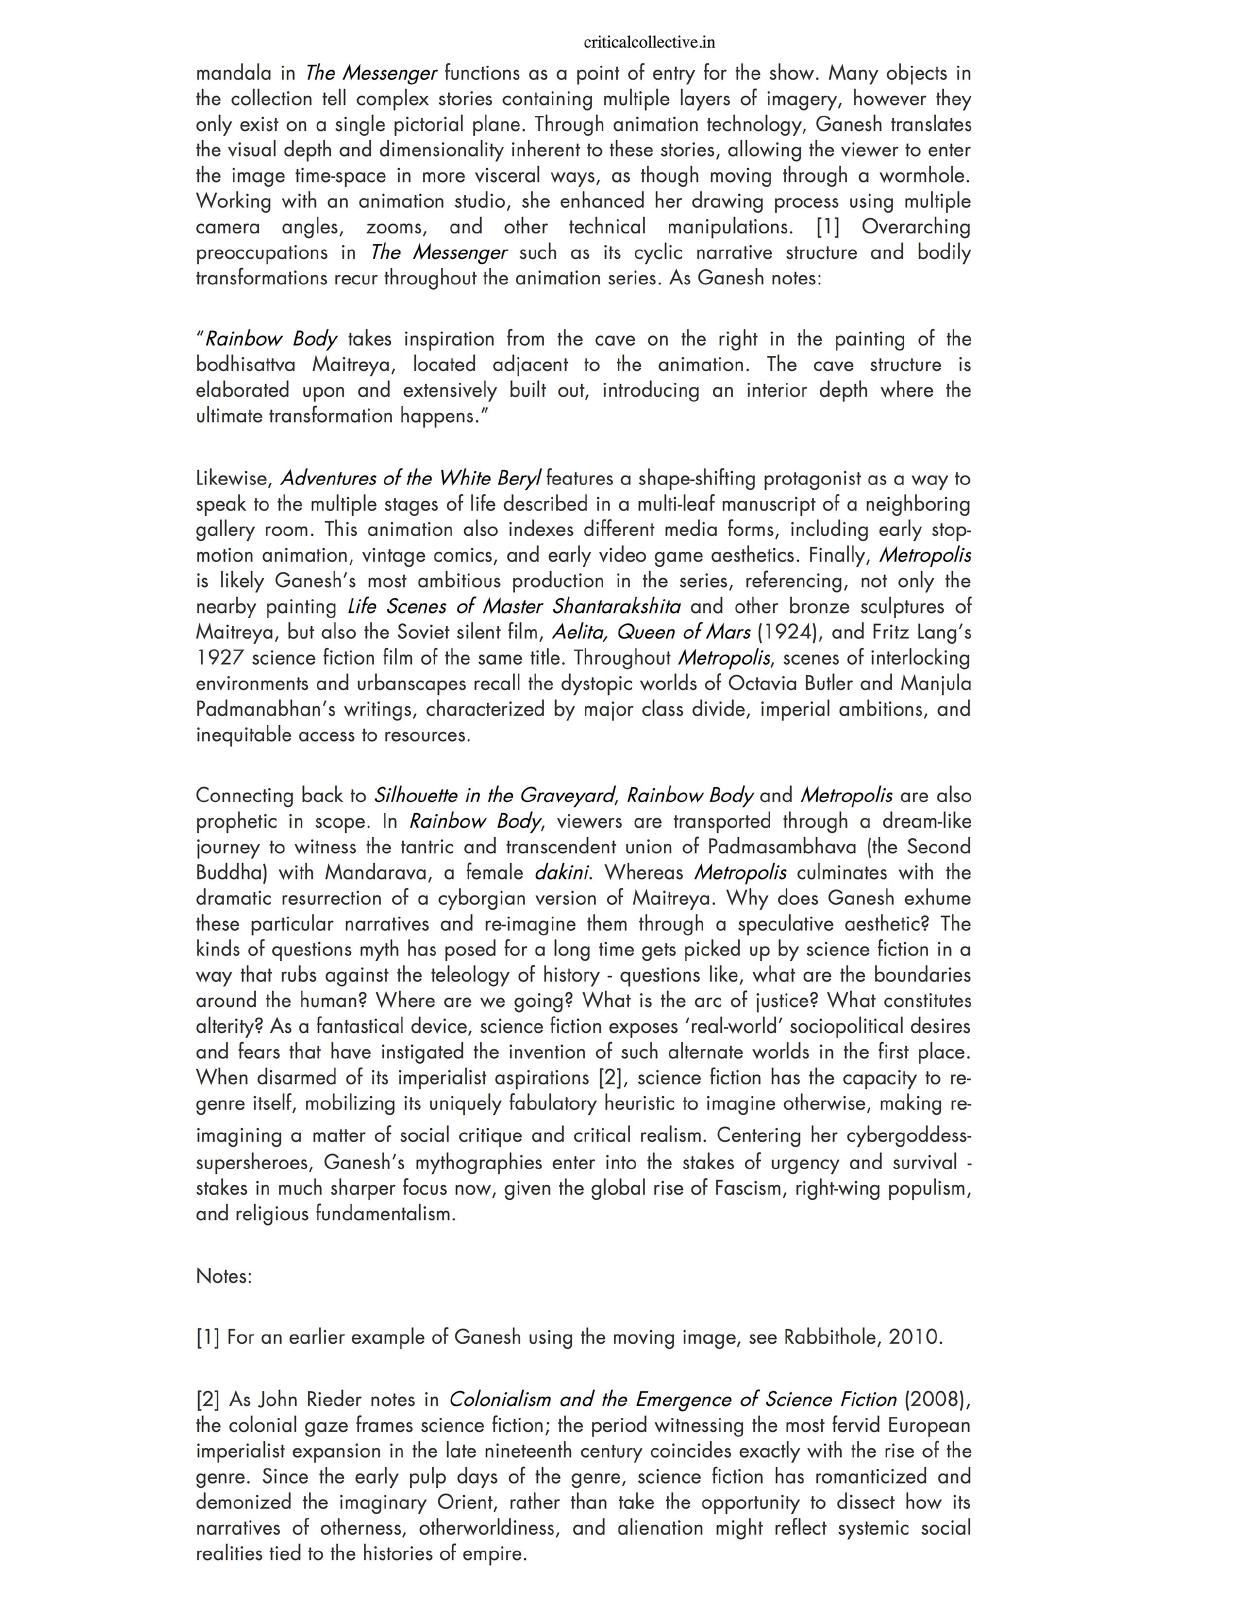 Natasha Bissonauth critical collective scholarly review-min_Page_3.jpg